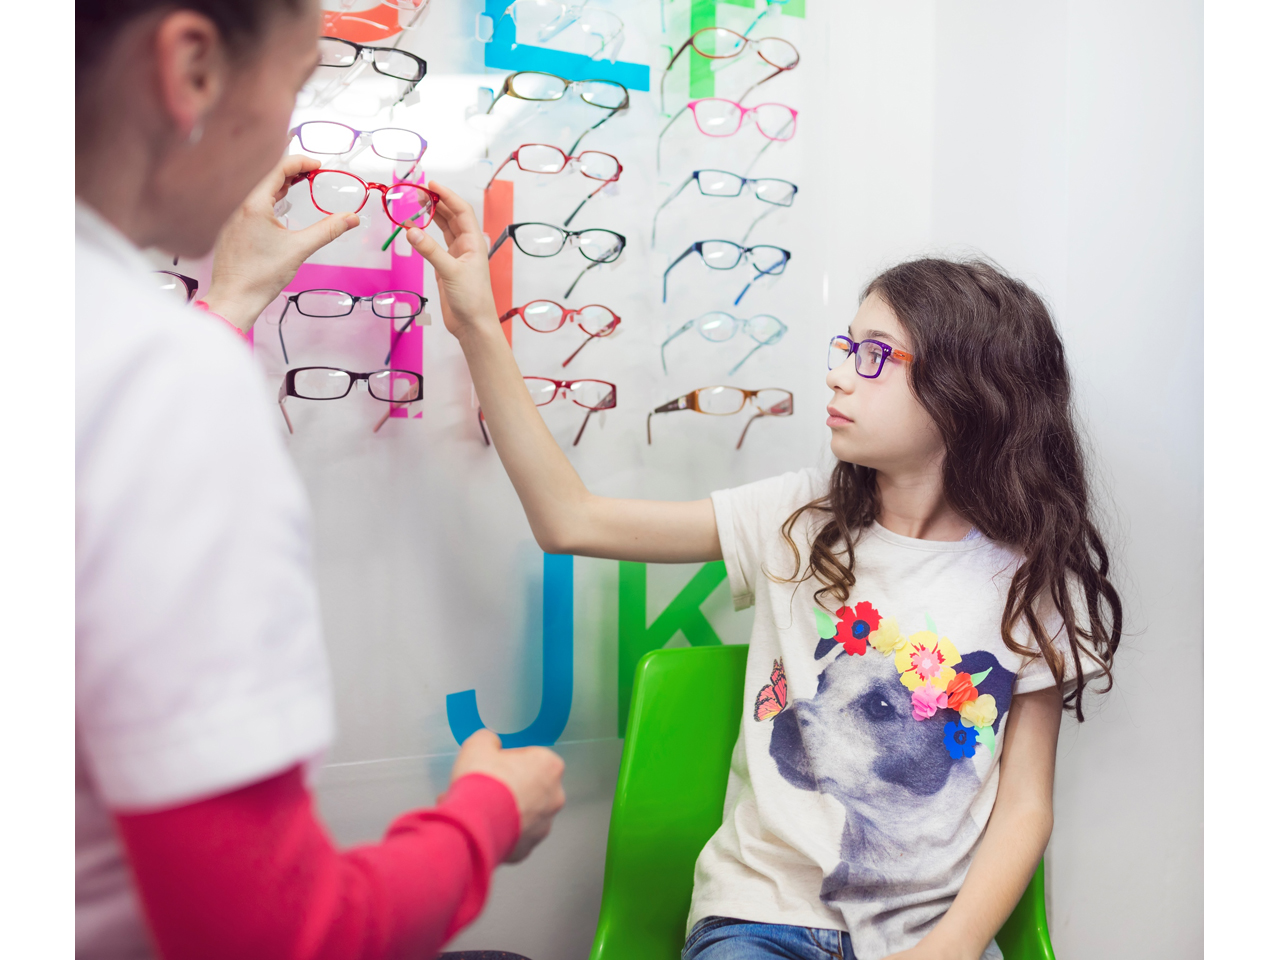 BOGDANOVIC SPECIALIZED OPHTHALMOLOGY CLINIC Optics Beograd